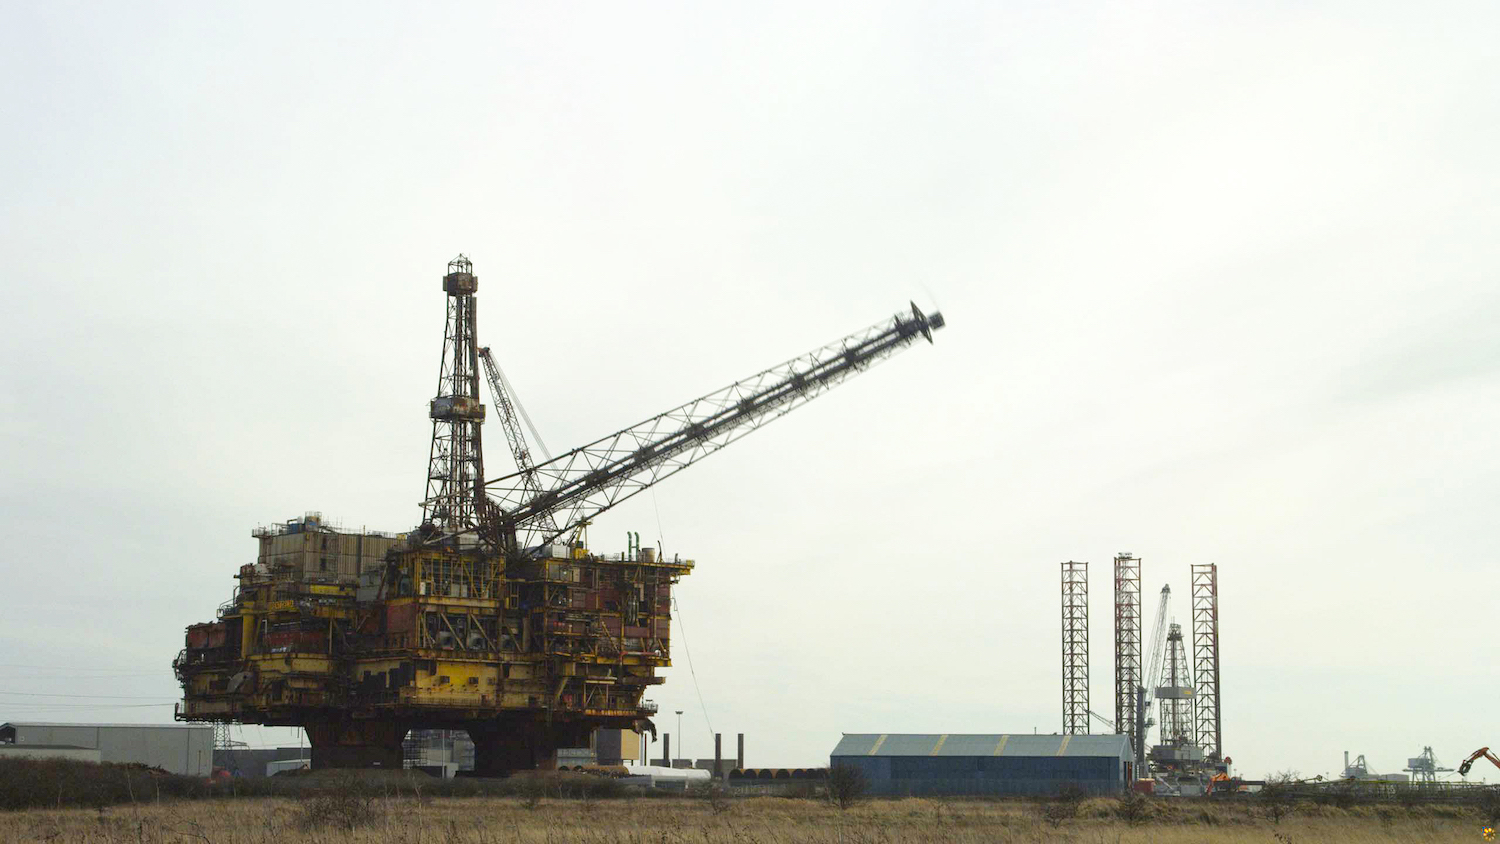 Shell Brent Delta Flare Tower Removal at ASP - 21st February 2018